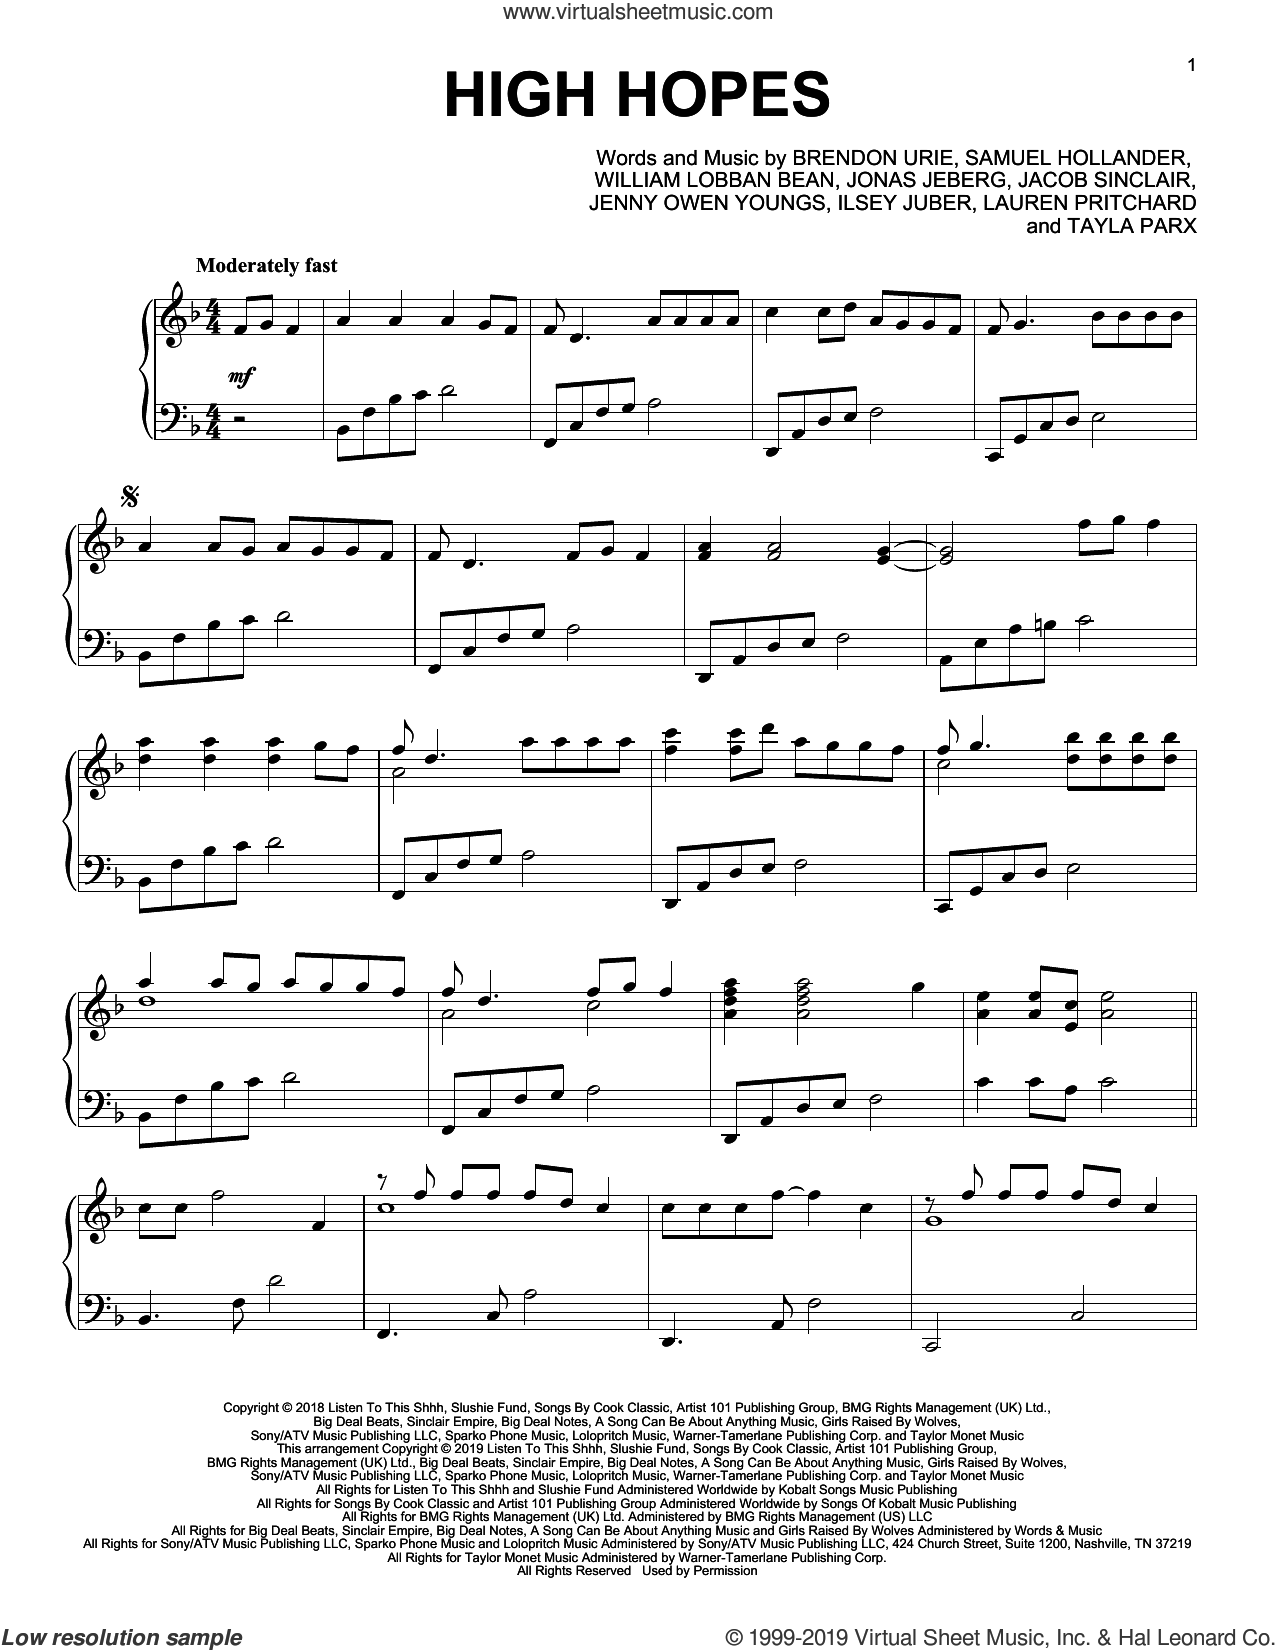 High Hopes sheet music for piano solo by Sam Hollander, Panic! At The Disco, Brendon Urie, Ilsey Juber, Jacob Sinclair, Jenny Owen Youngs, Jonas Jeberg, Lauren Pritchard, Tayla Parx and William Lobban Bean, intermediate skill level